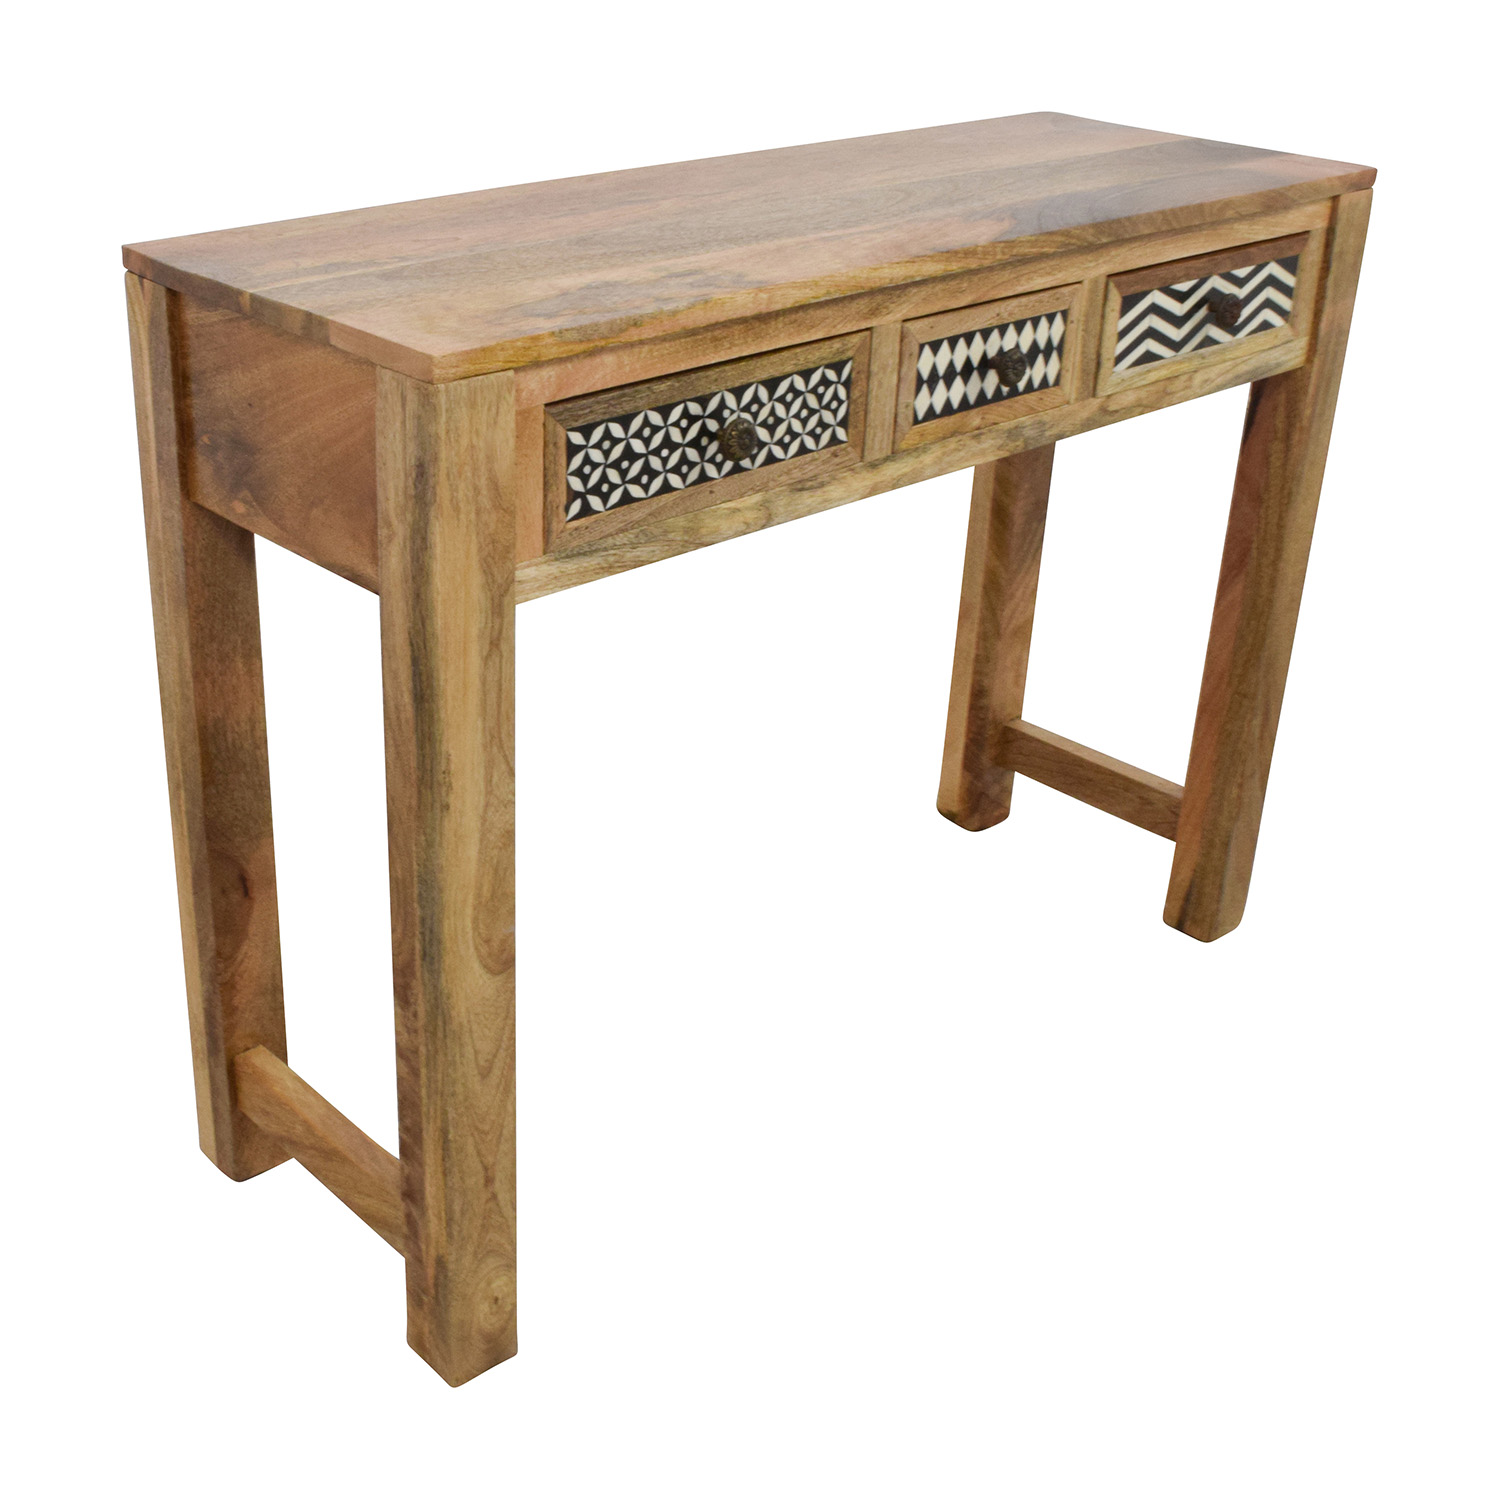 Natural Wood Table with Patterned Drawers second hand